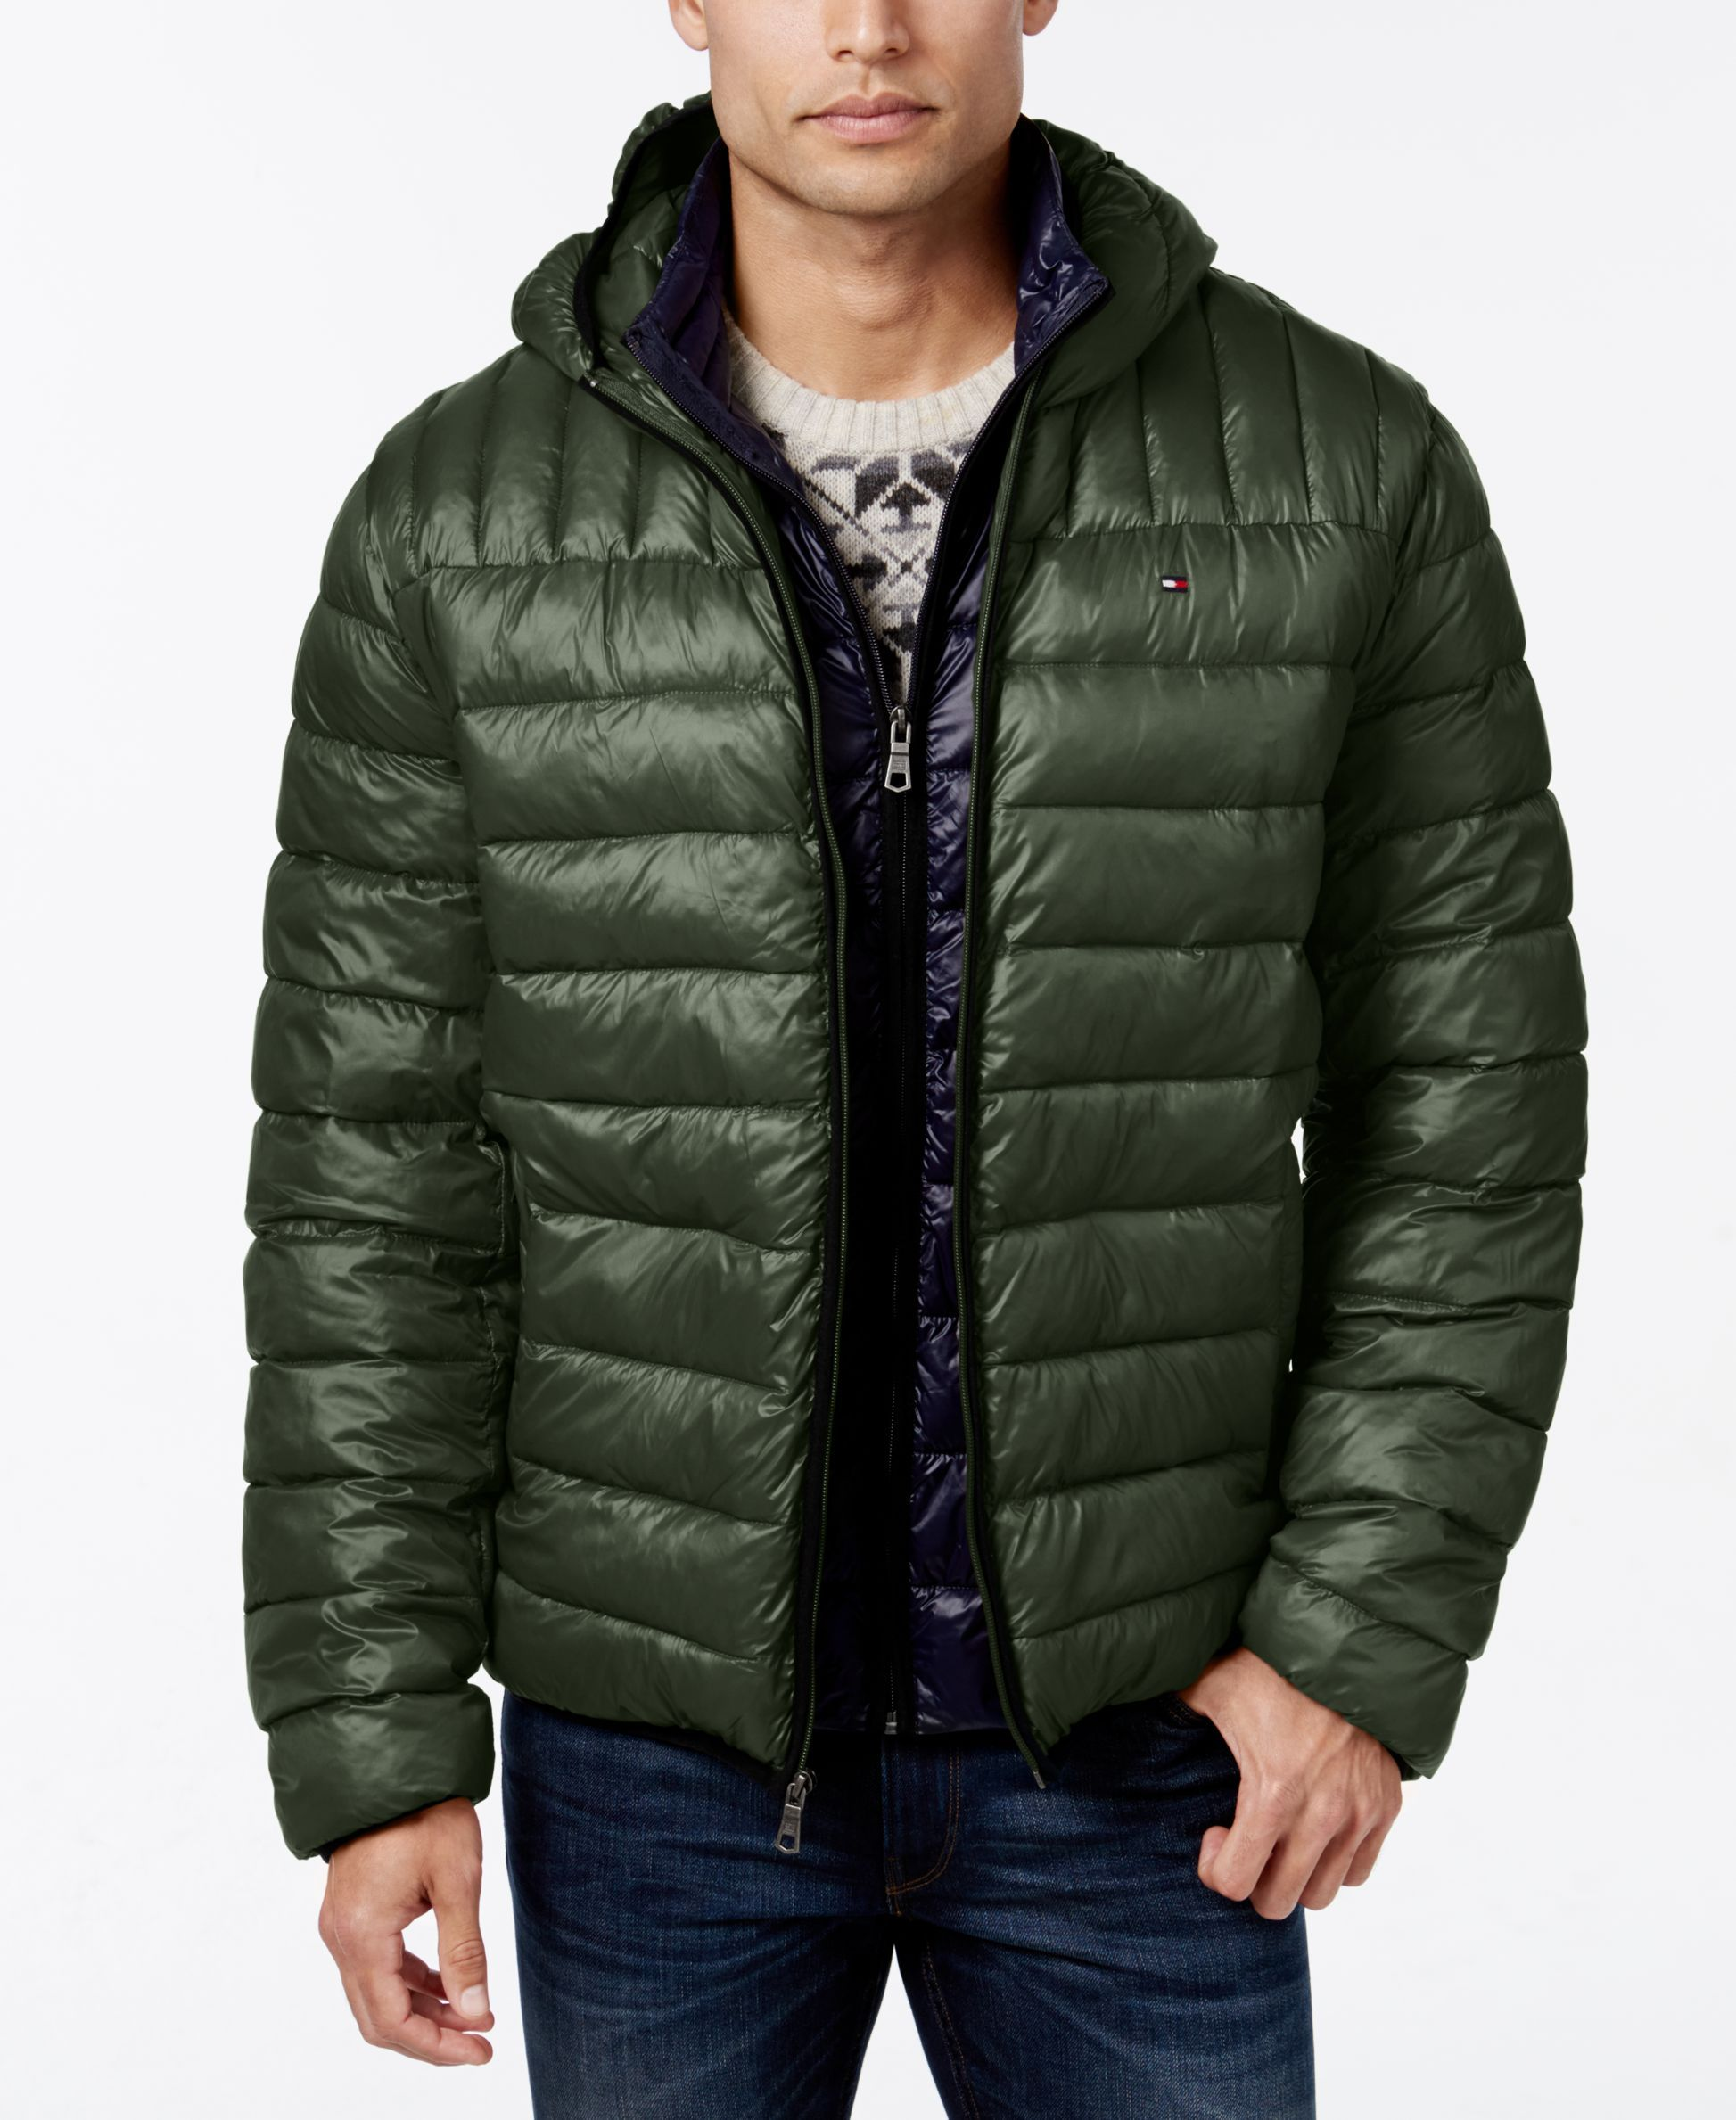 Tommy Hilfiger Hooded Packable Jacket | Products | Pinterest ...